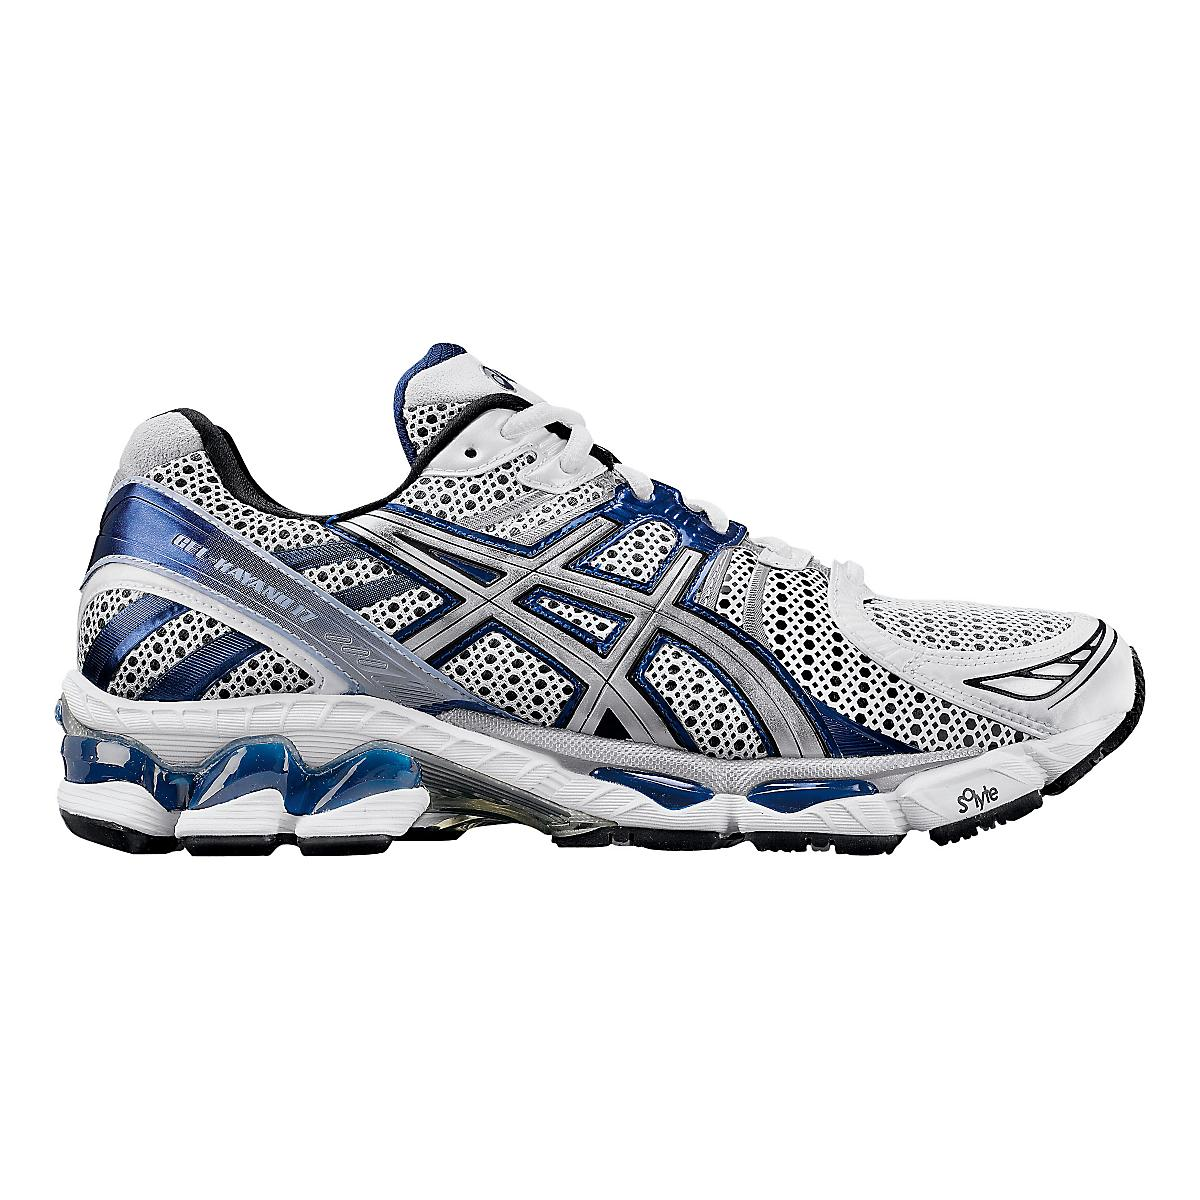 outlet store 81642 d49ca Mens ASICS GEL-Kayano 17 Running Shoe at Road Runner Sports